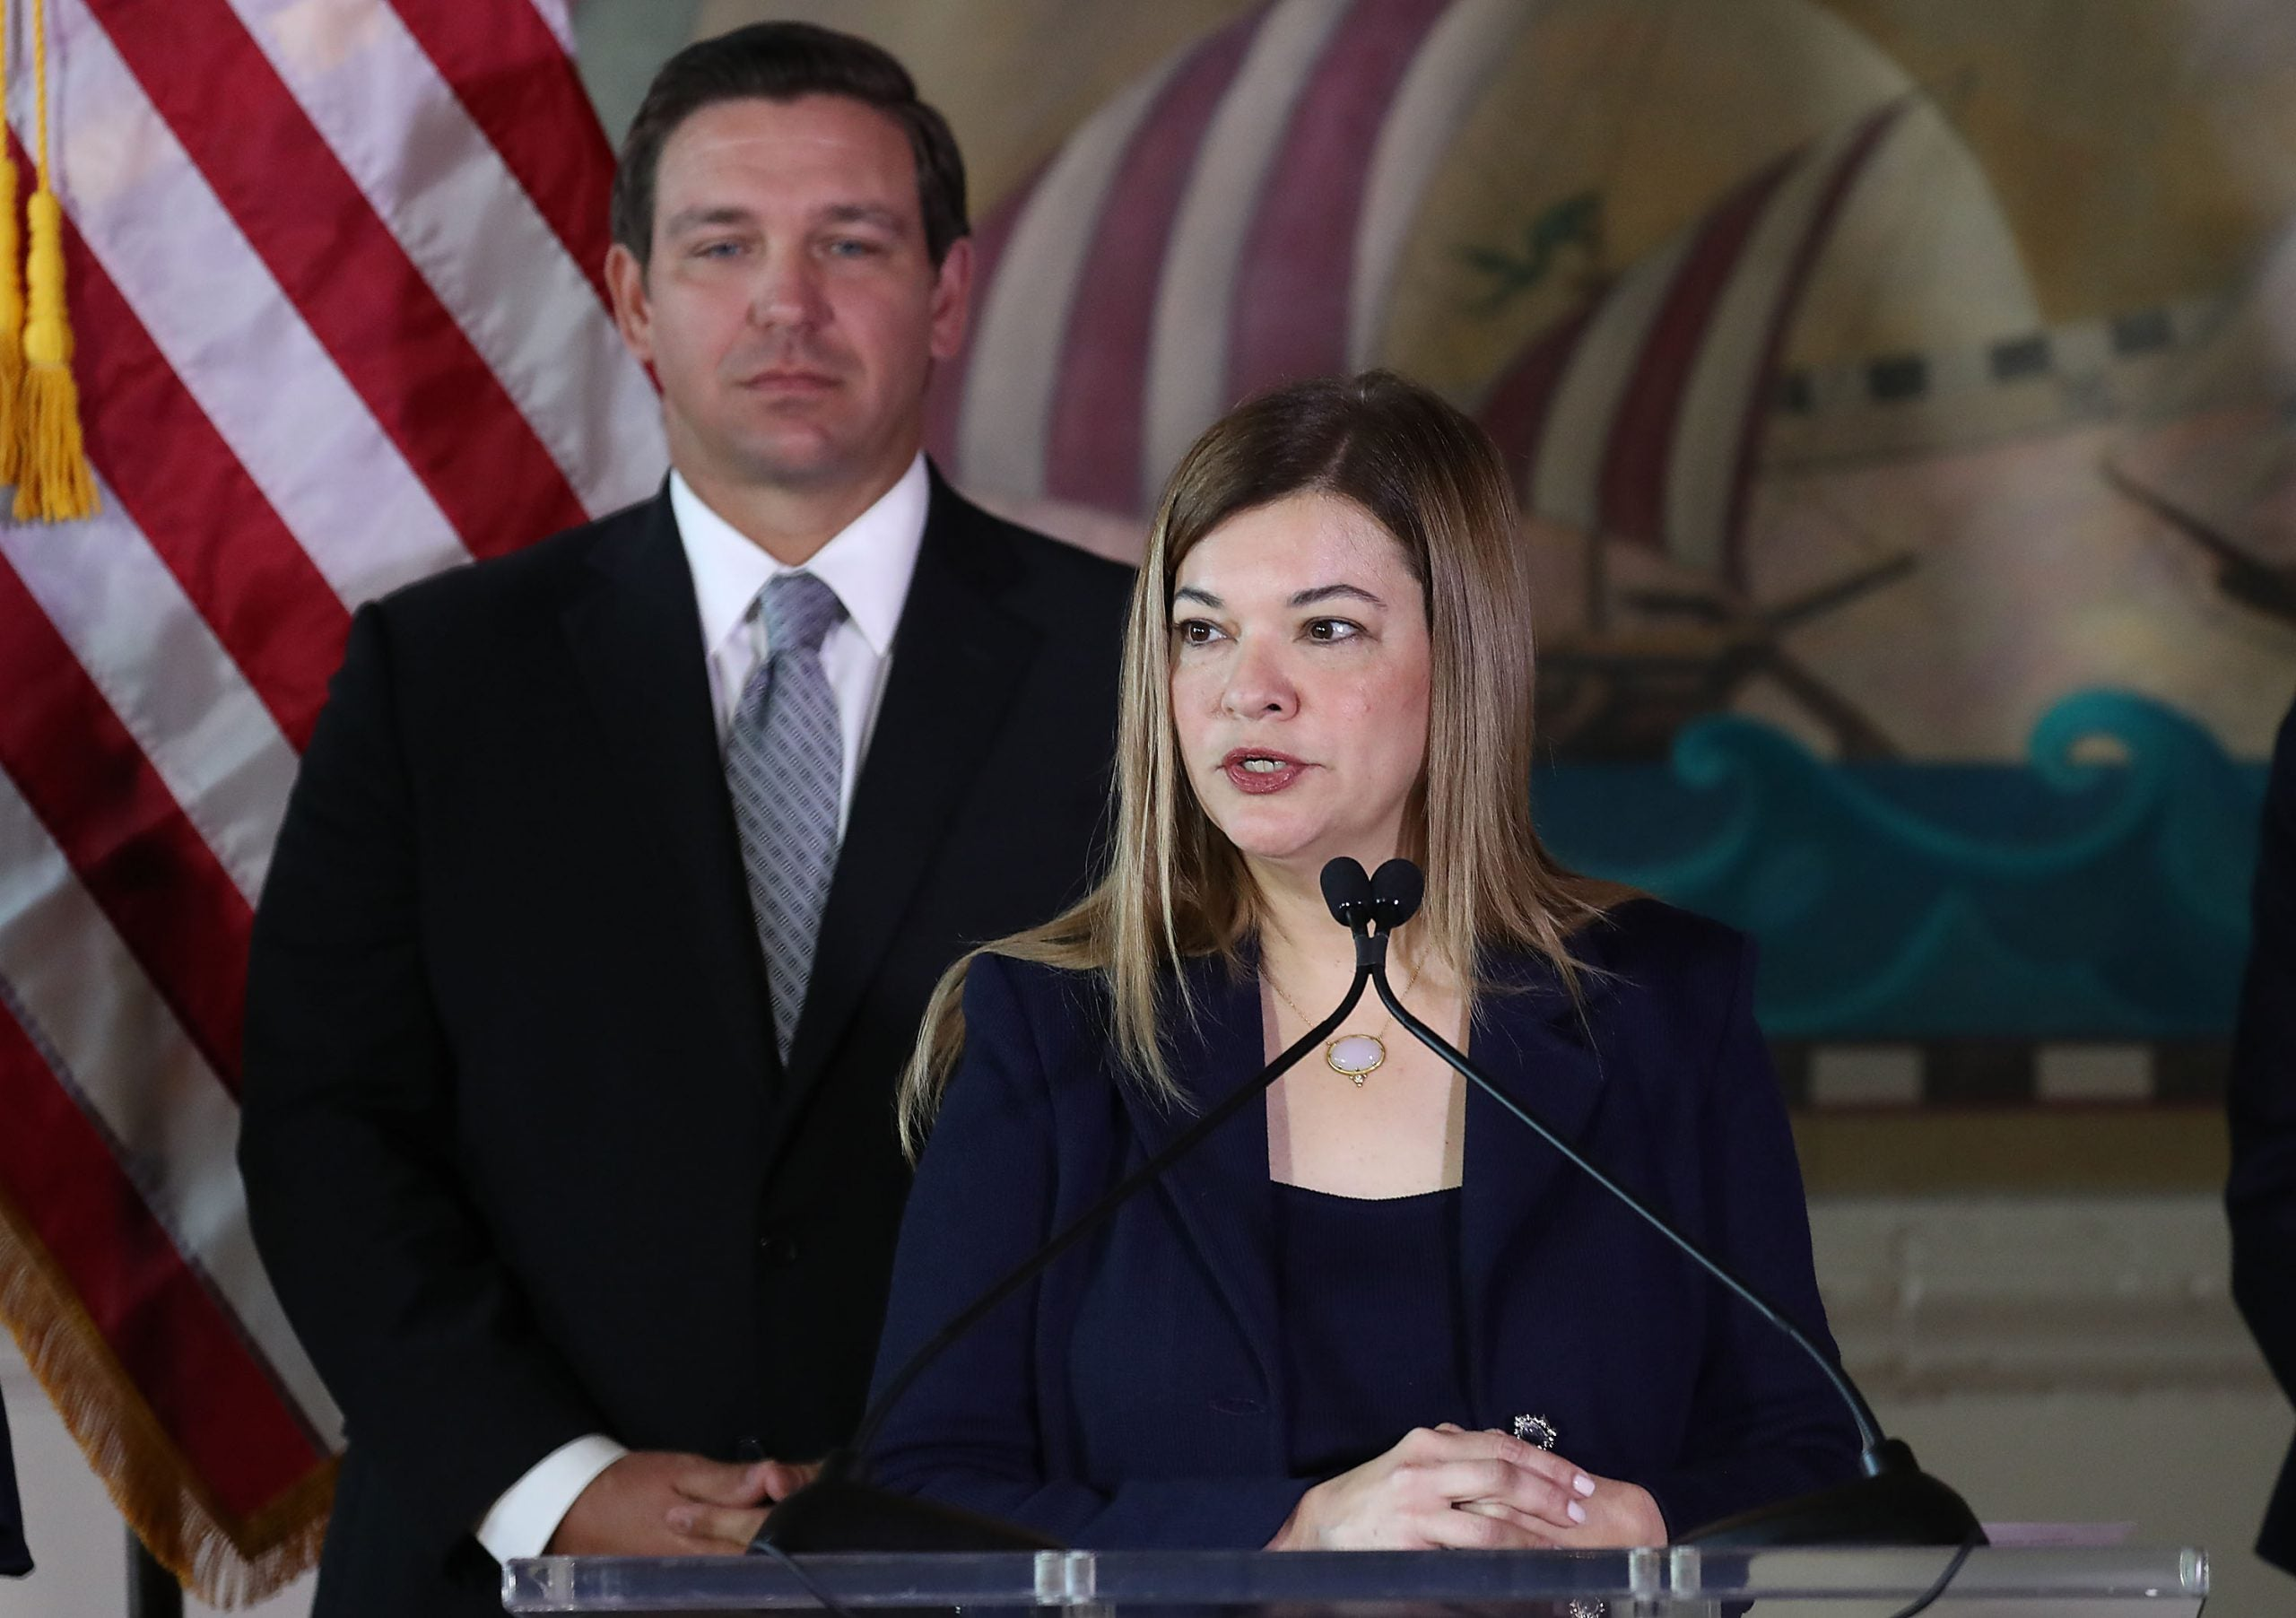 Gov. Ron DeSantis stands behind Barbara Lagoa as she speaks after he named her to the Florida Supreme Court on January 09, 2019 in Miami, Florida.